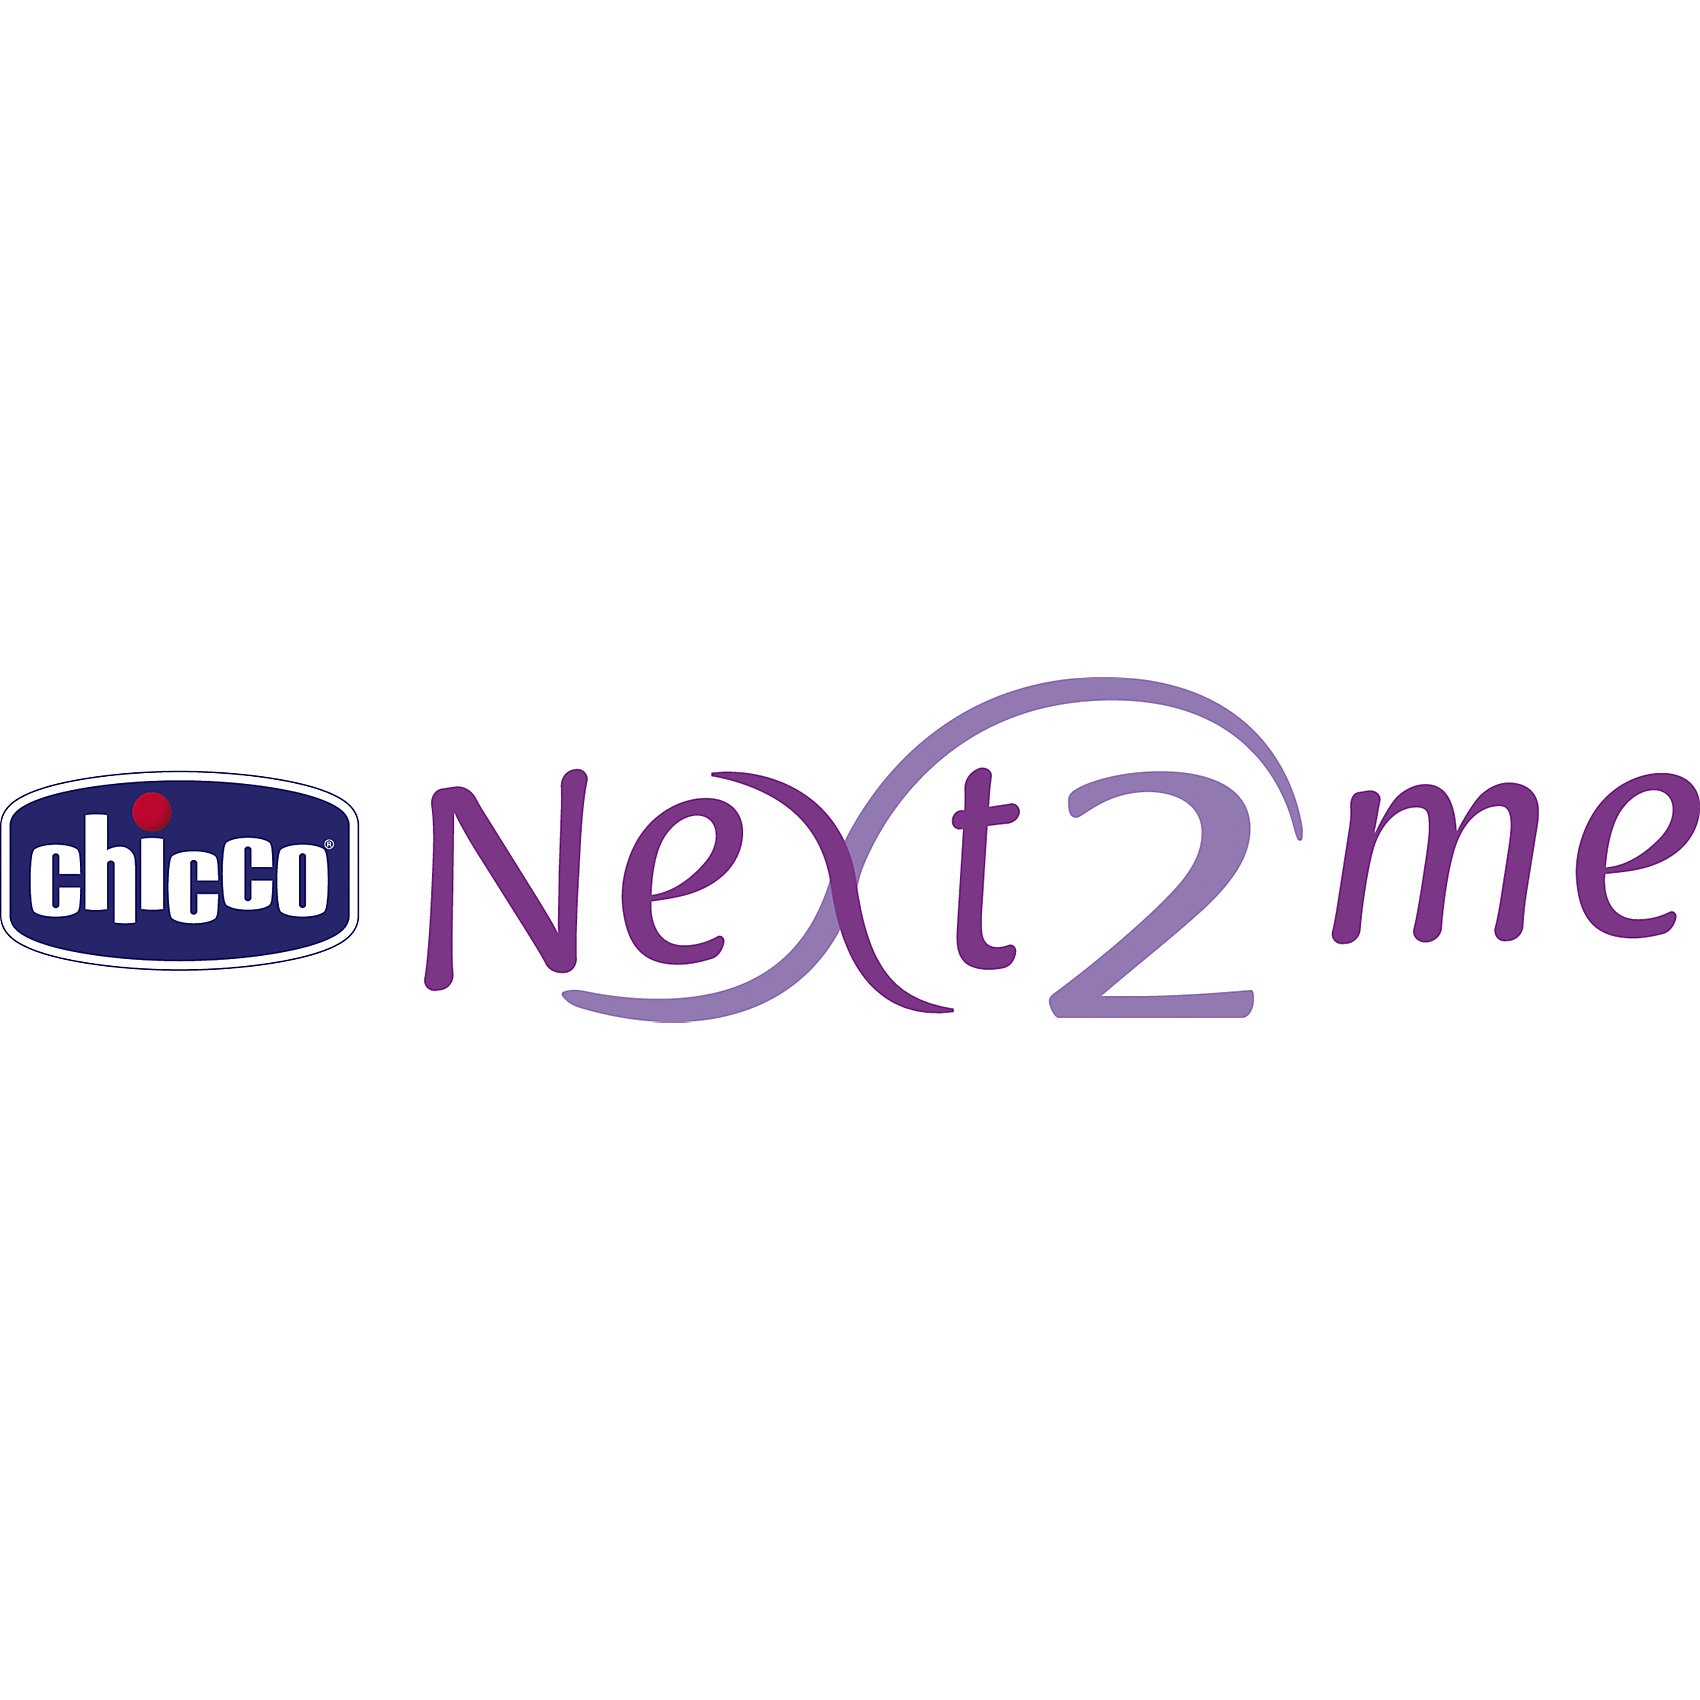 Кроватка Next2me, Chicco, denim от myToys